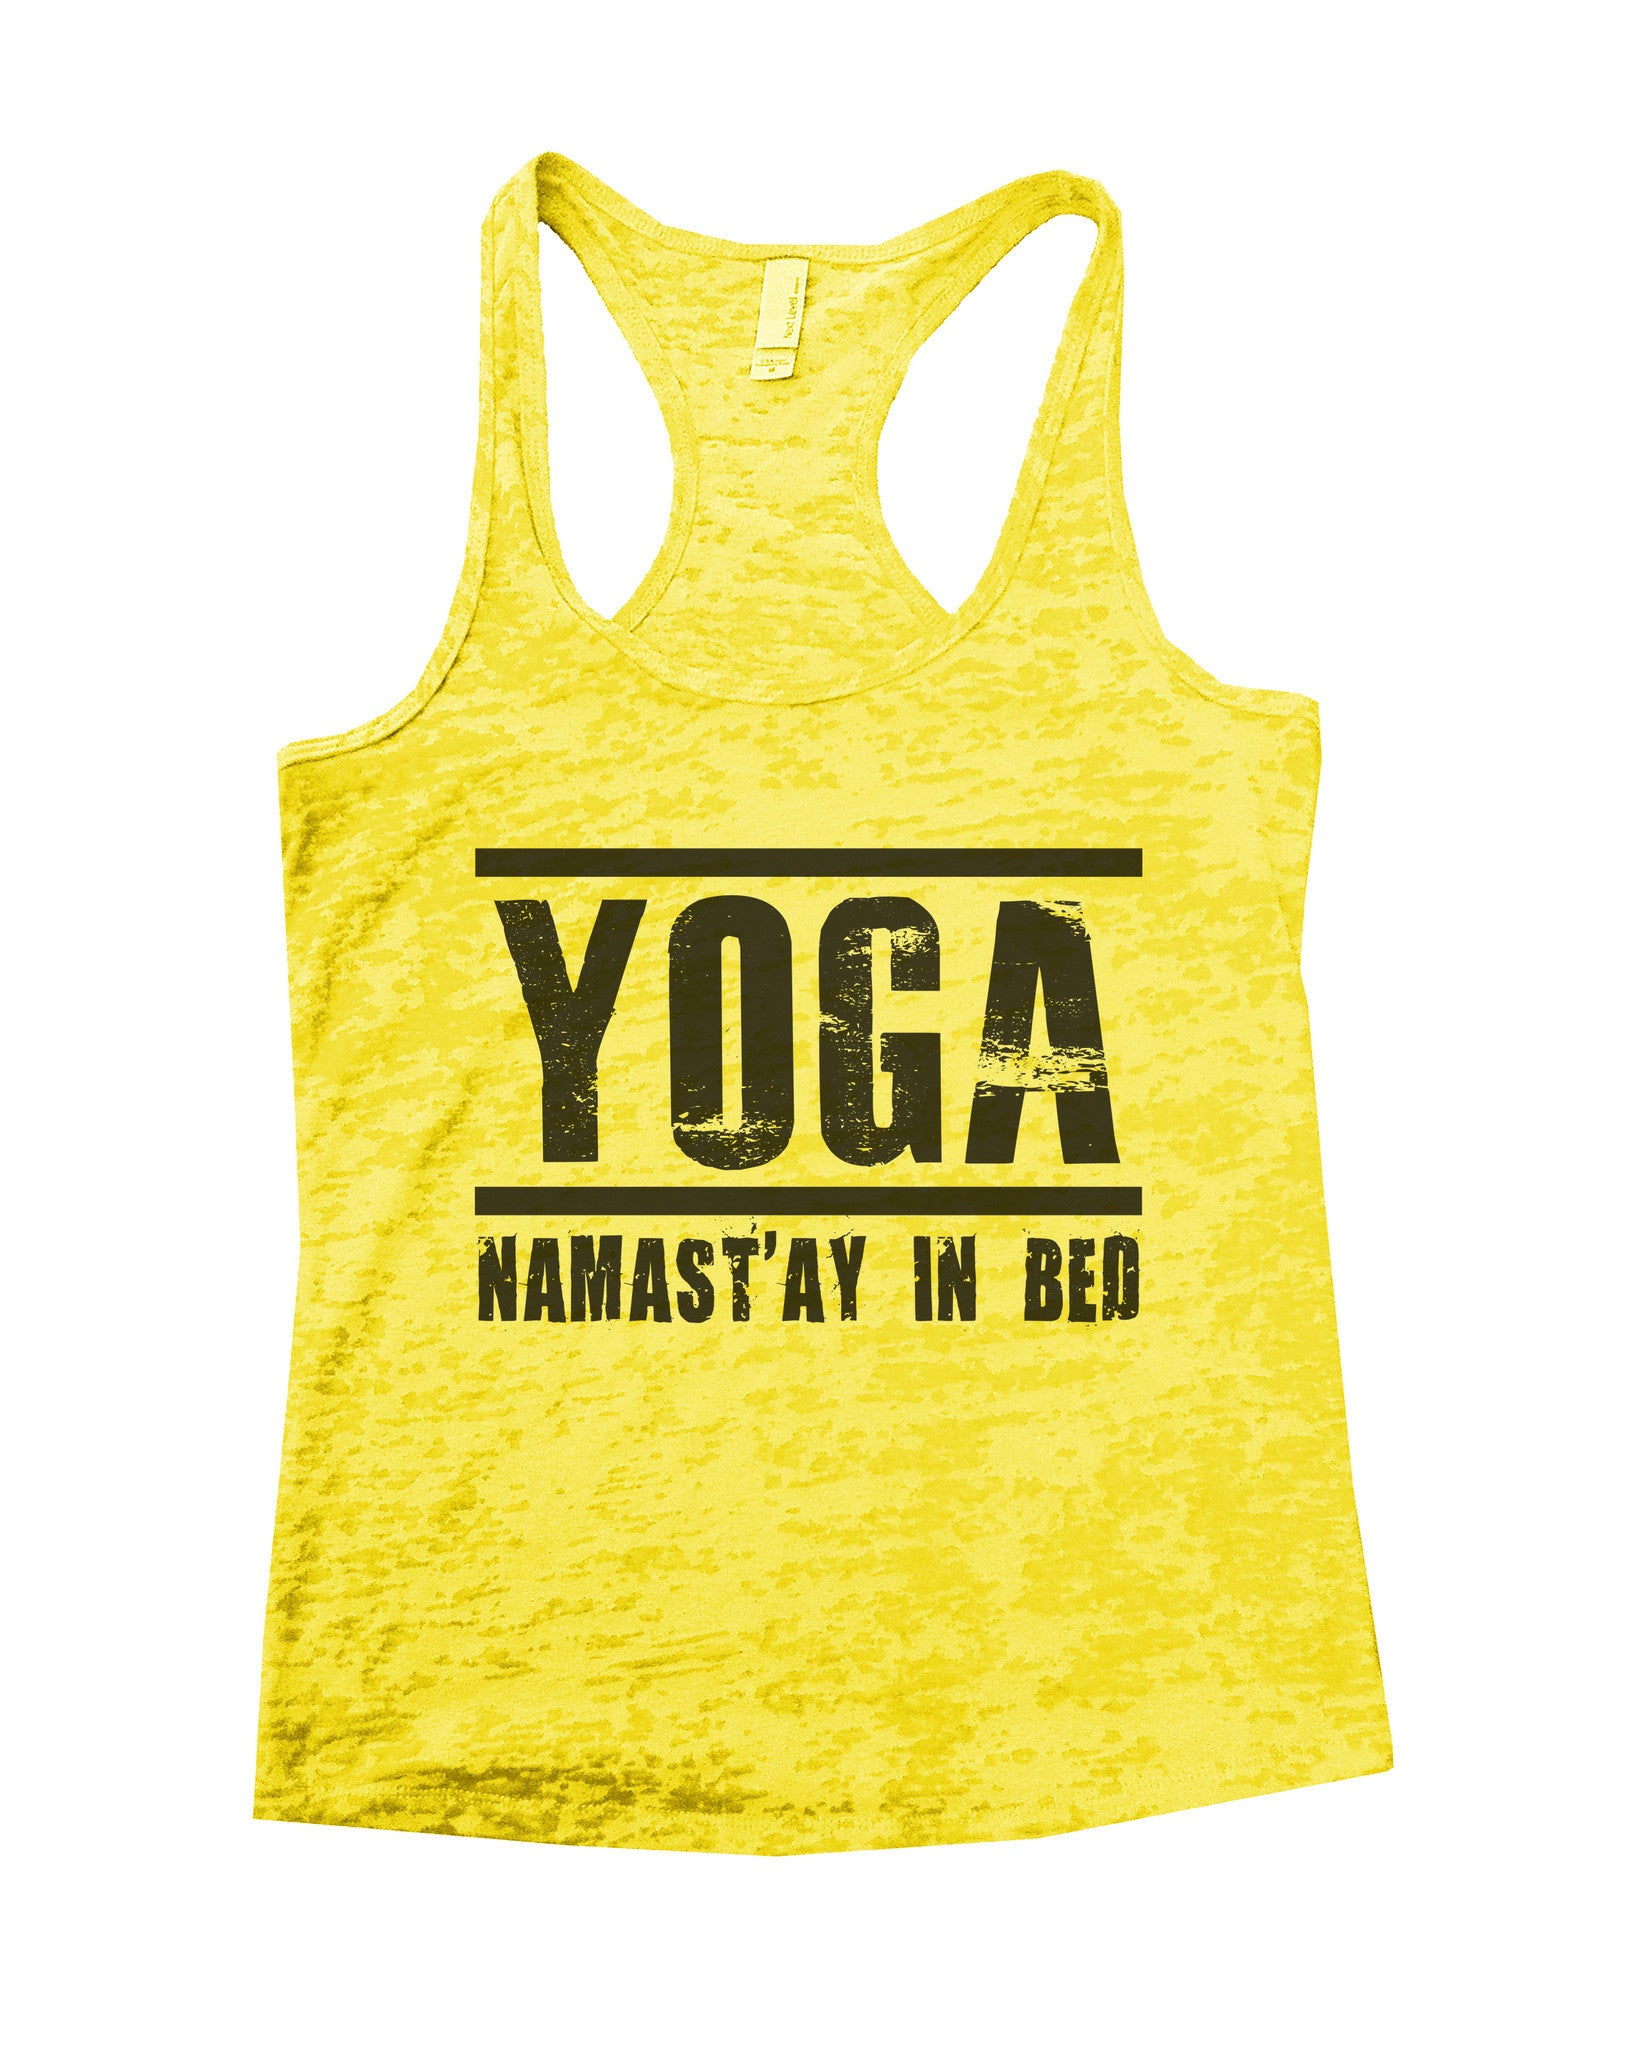 Yoga Namast'ay In Bed Burnout Tank Top By BurnoutTankTops.com - 649 - Funny Shirts Tank Tops Burnouts and Triblends  - 6